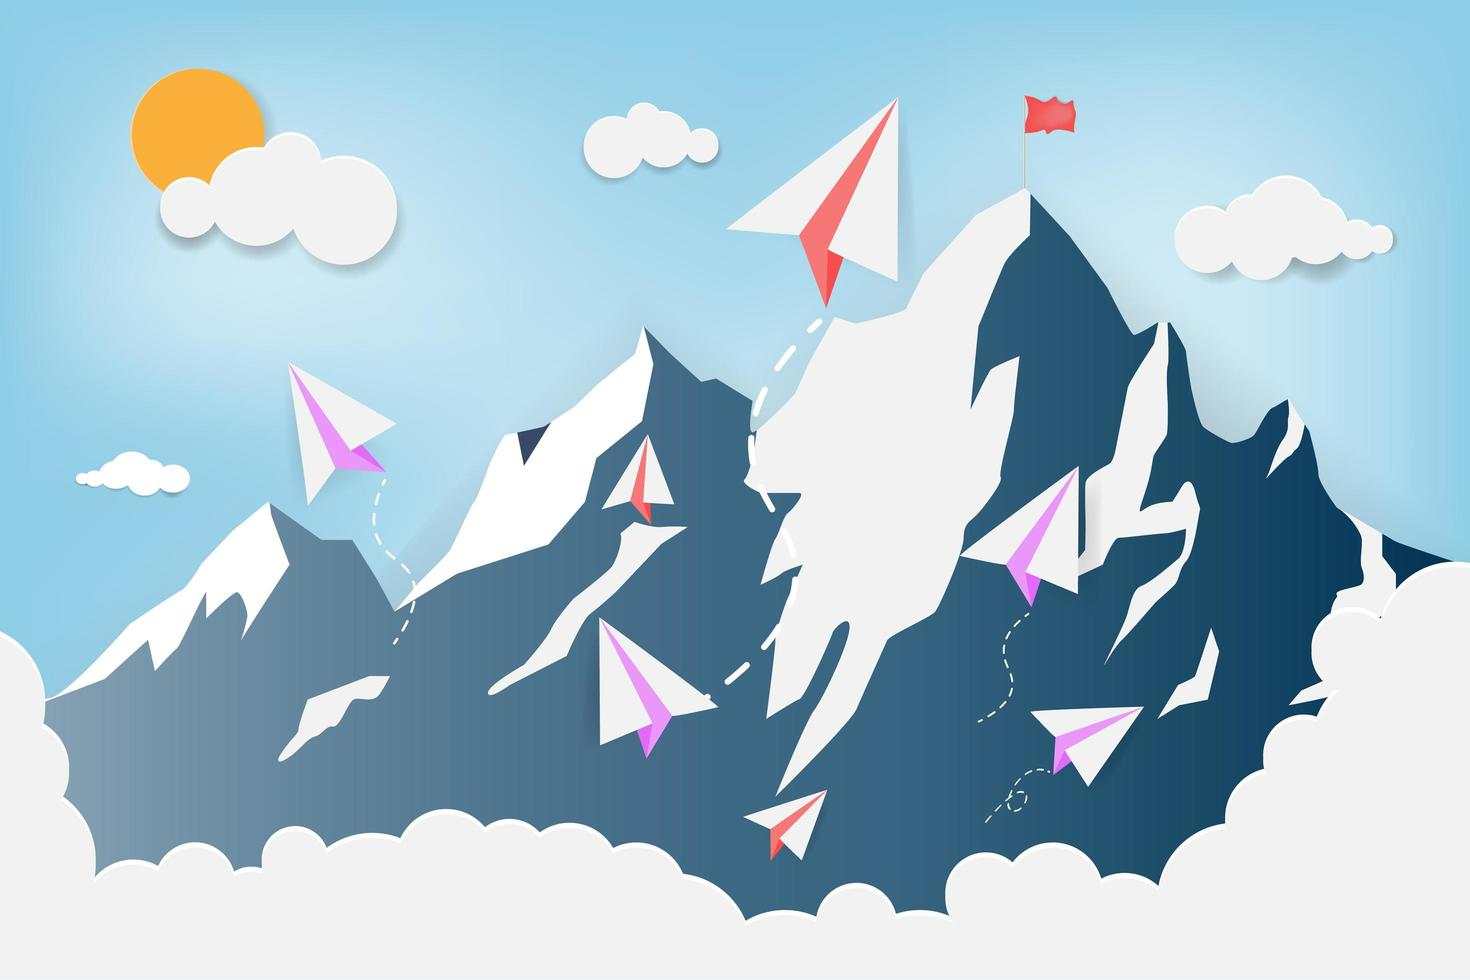 Paper Airplane Flying Over Mountains  vector